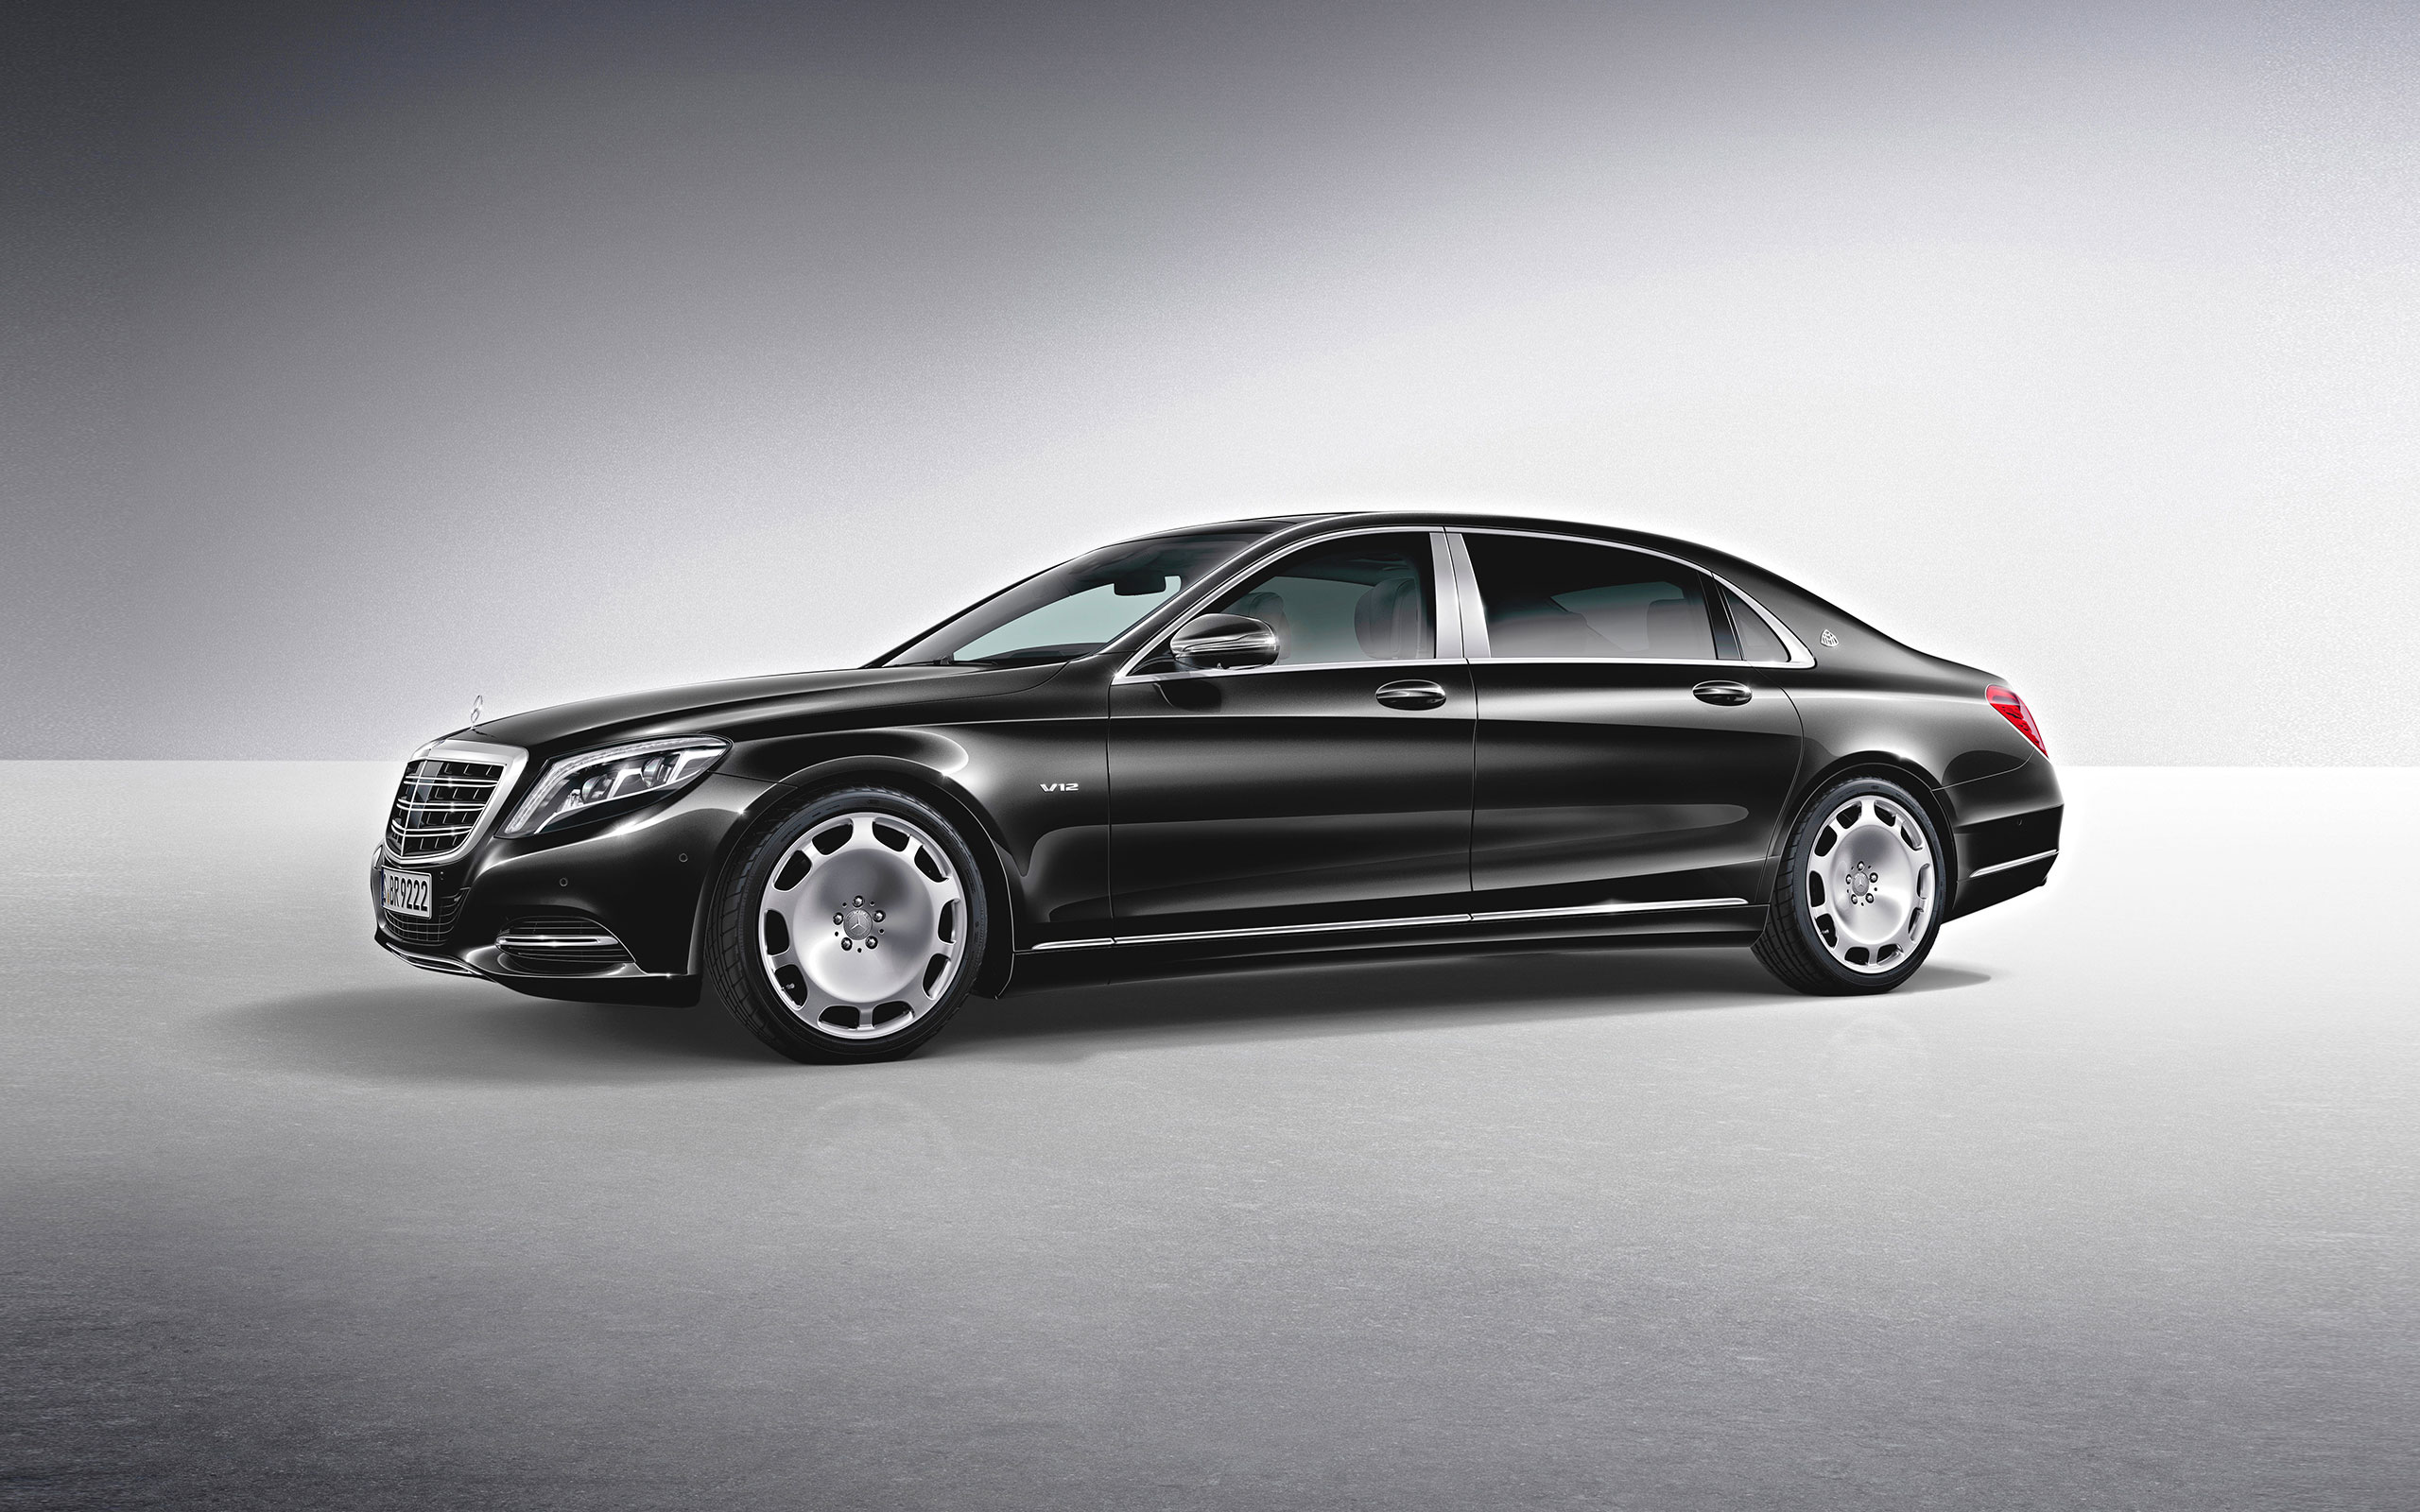 Mercedes Maybach S600 HD wallpapers download 2560x1600